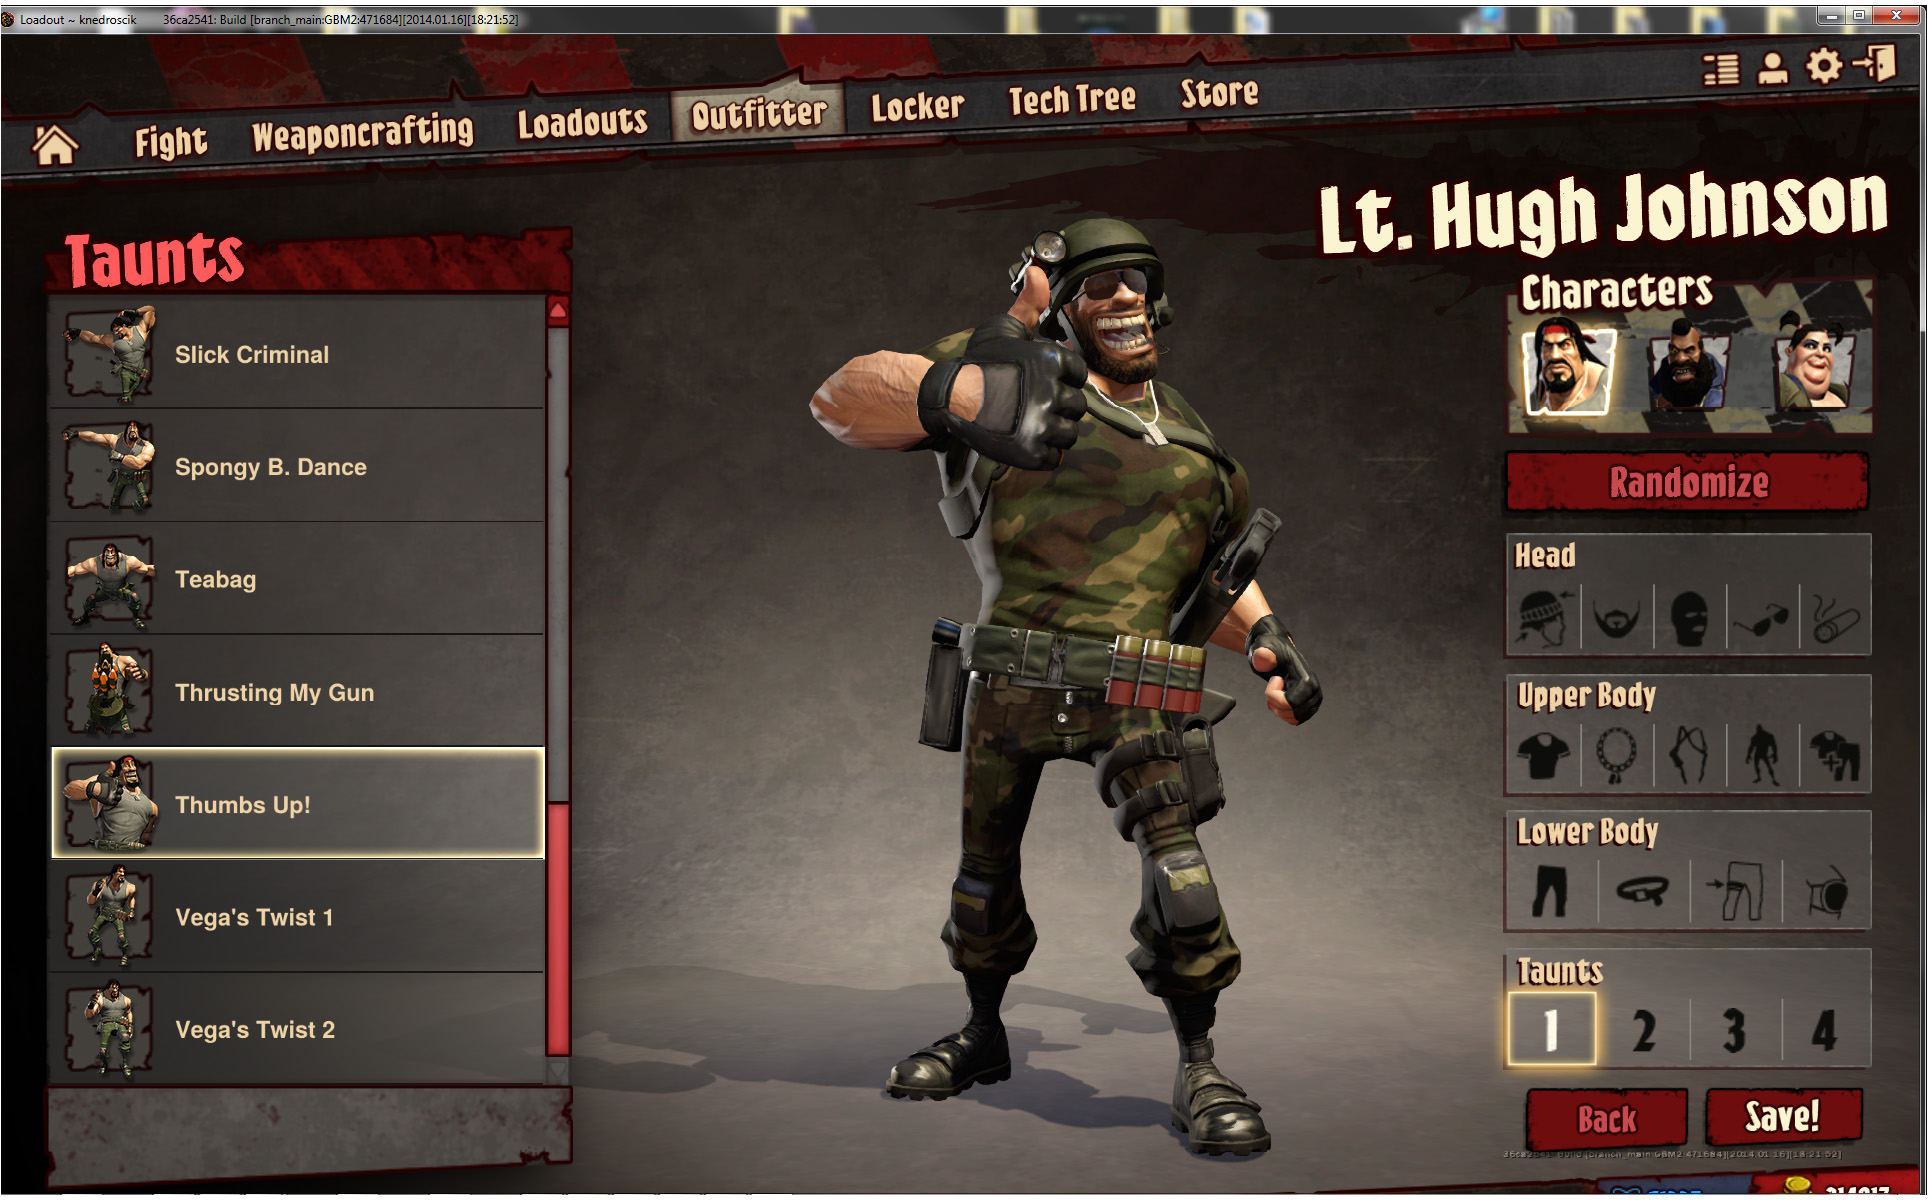 Loadout-Outfitter-Axl